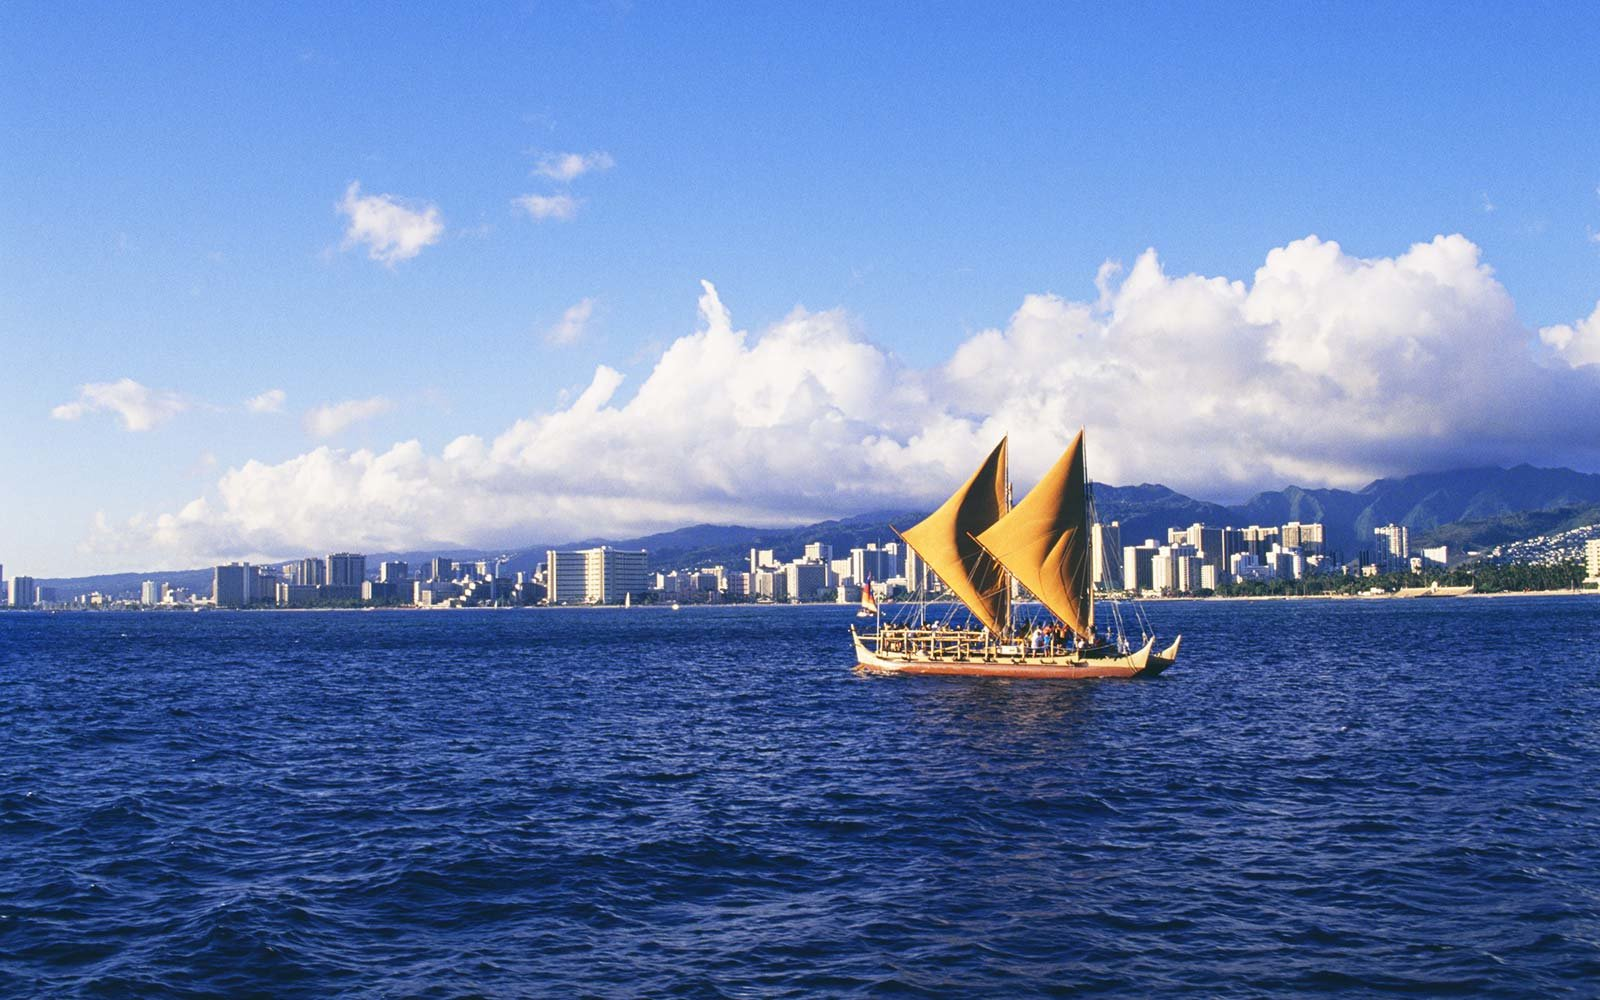 Voyagers Complete 3-year Trip Around the World in a Polynesian Canoe With..